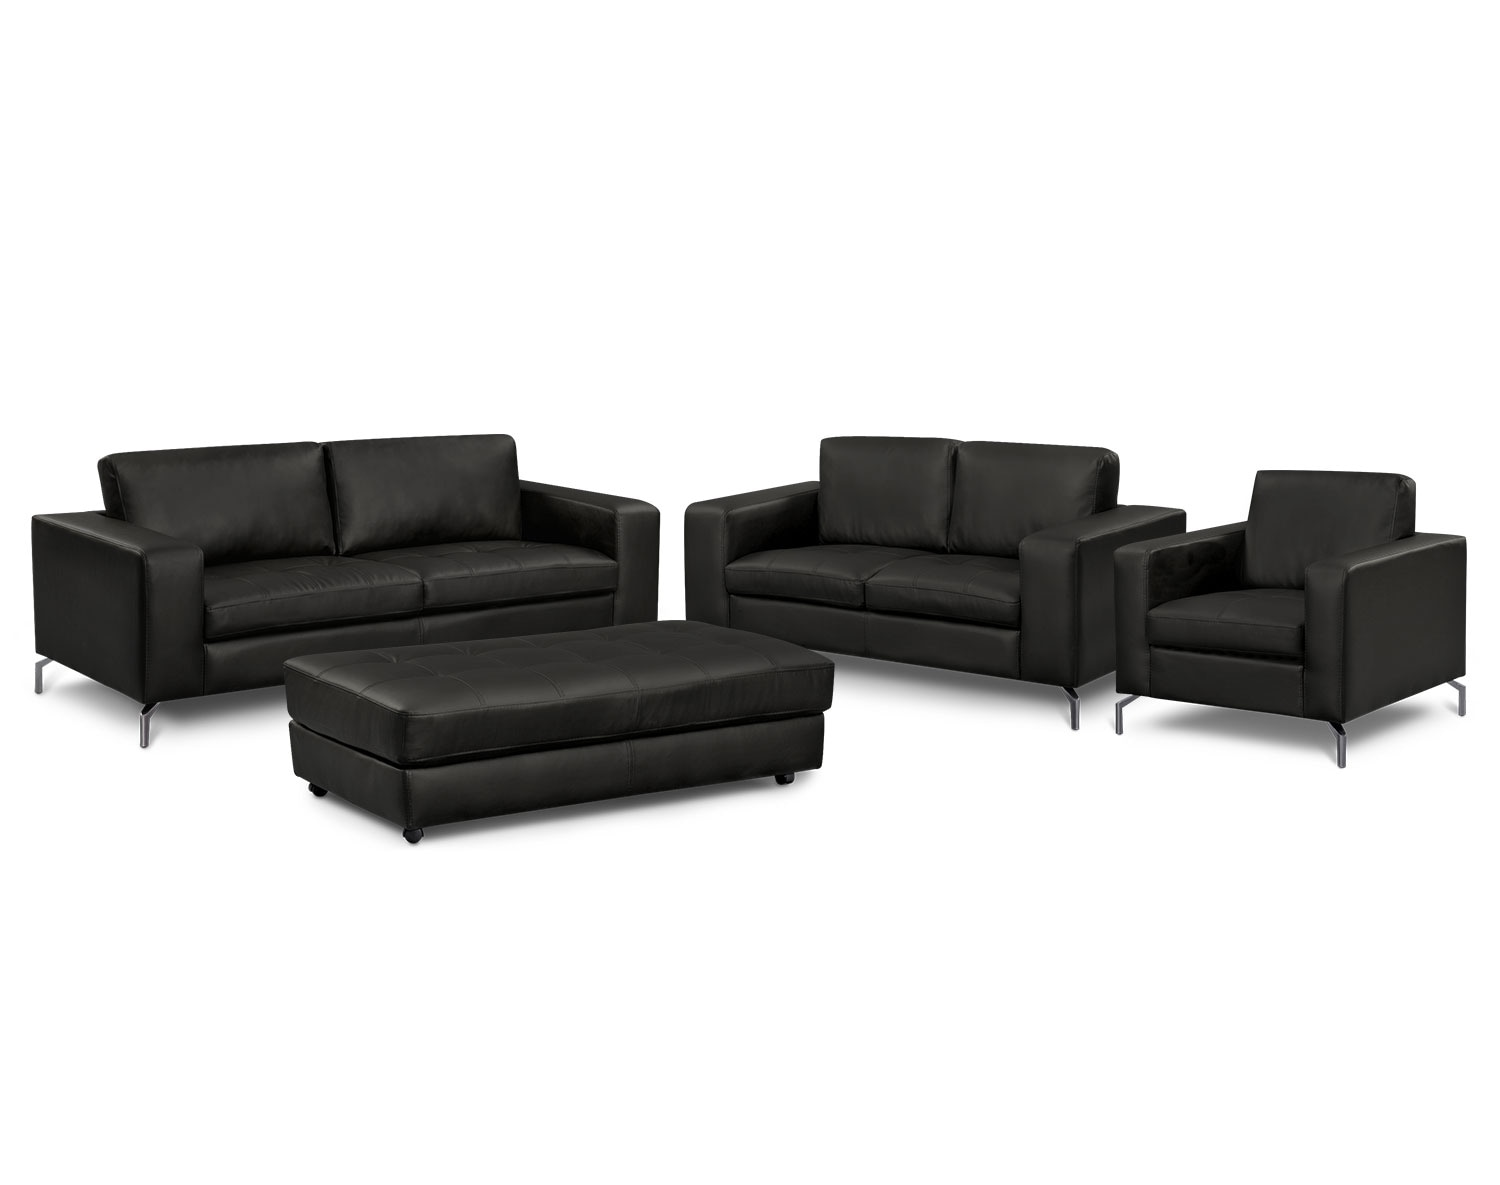 Living Room Furniture - The Mirage Black Collection - Sofa